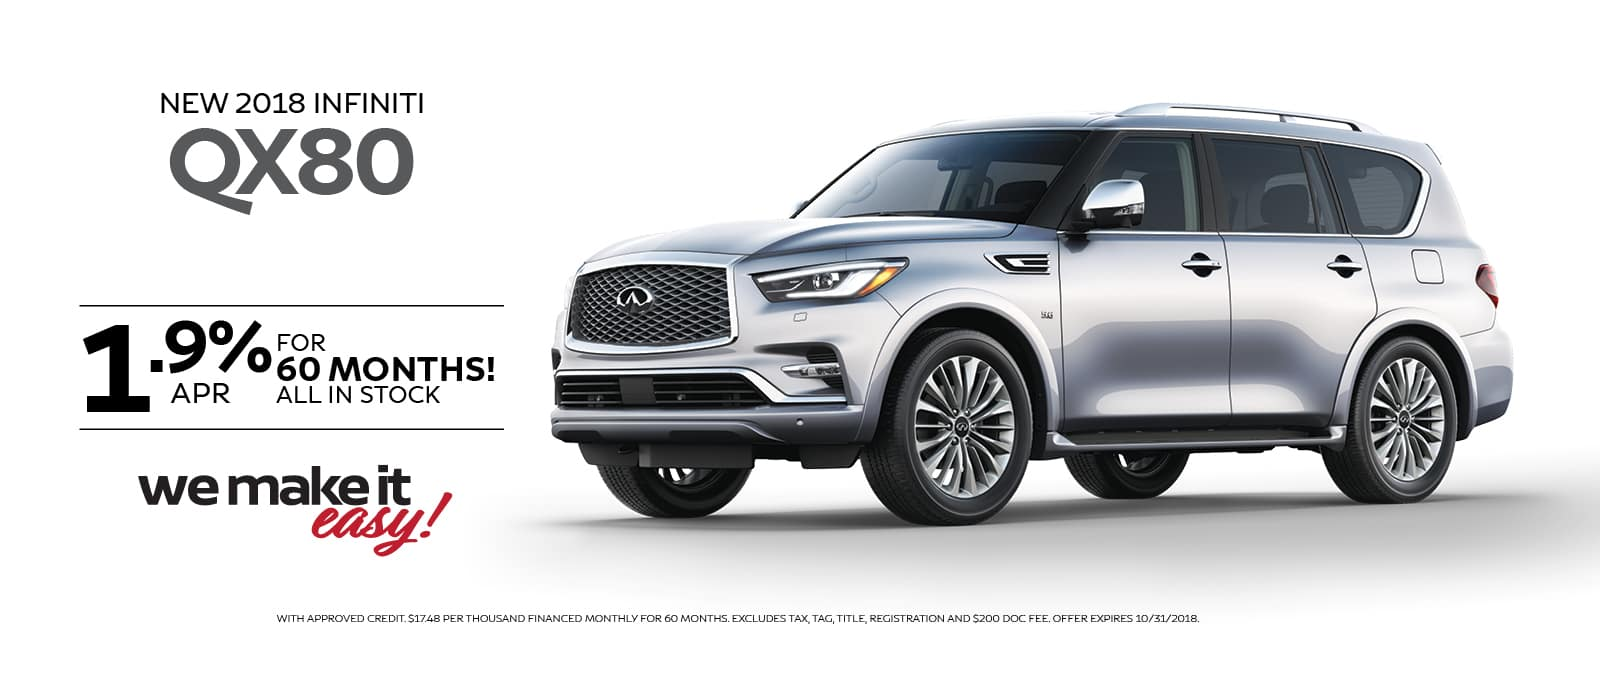 car doc metairie	  Ray Brandt INFINITI of Metairie | INFINITI Dealer near New Orleans